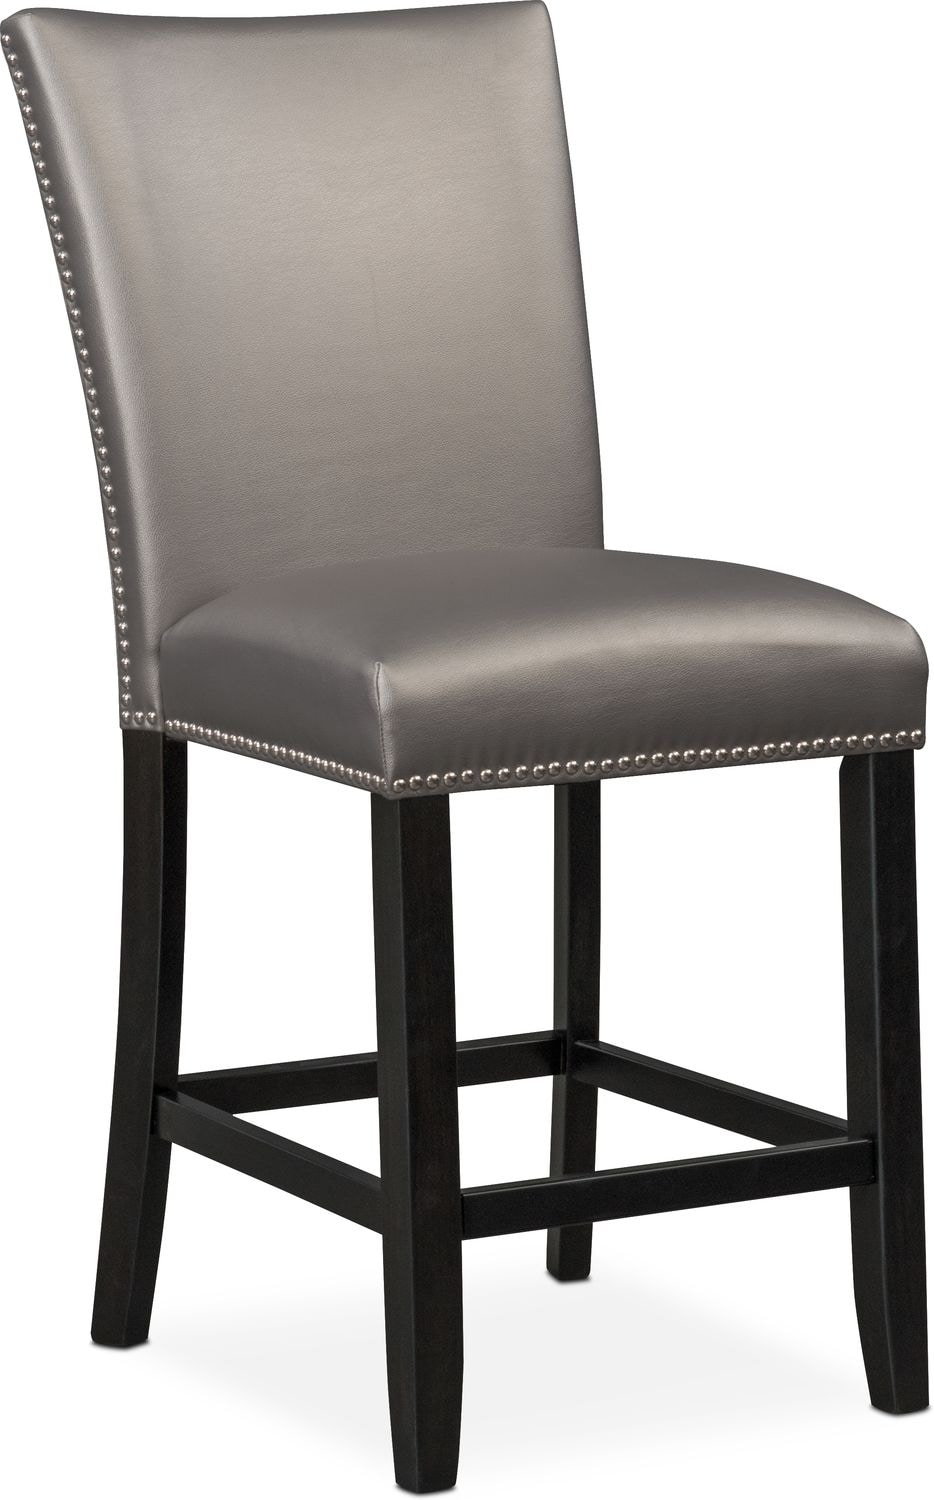 Superieur Artemis Counter Height Upholstered Stool   Gray